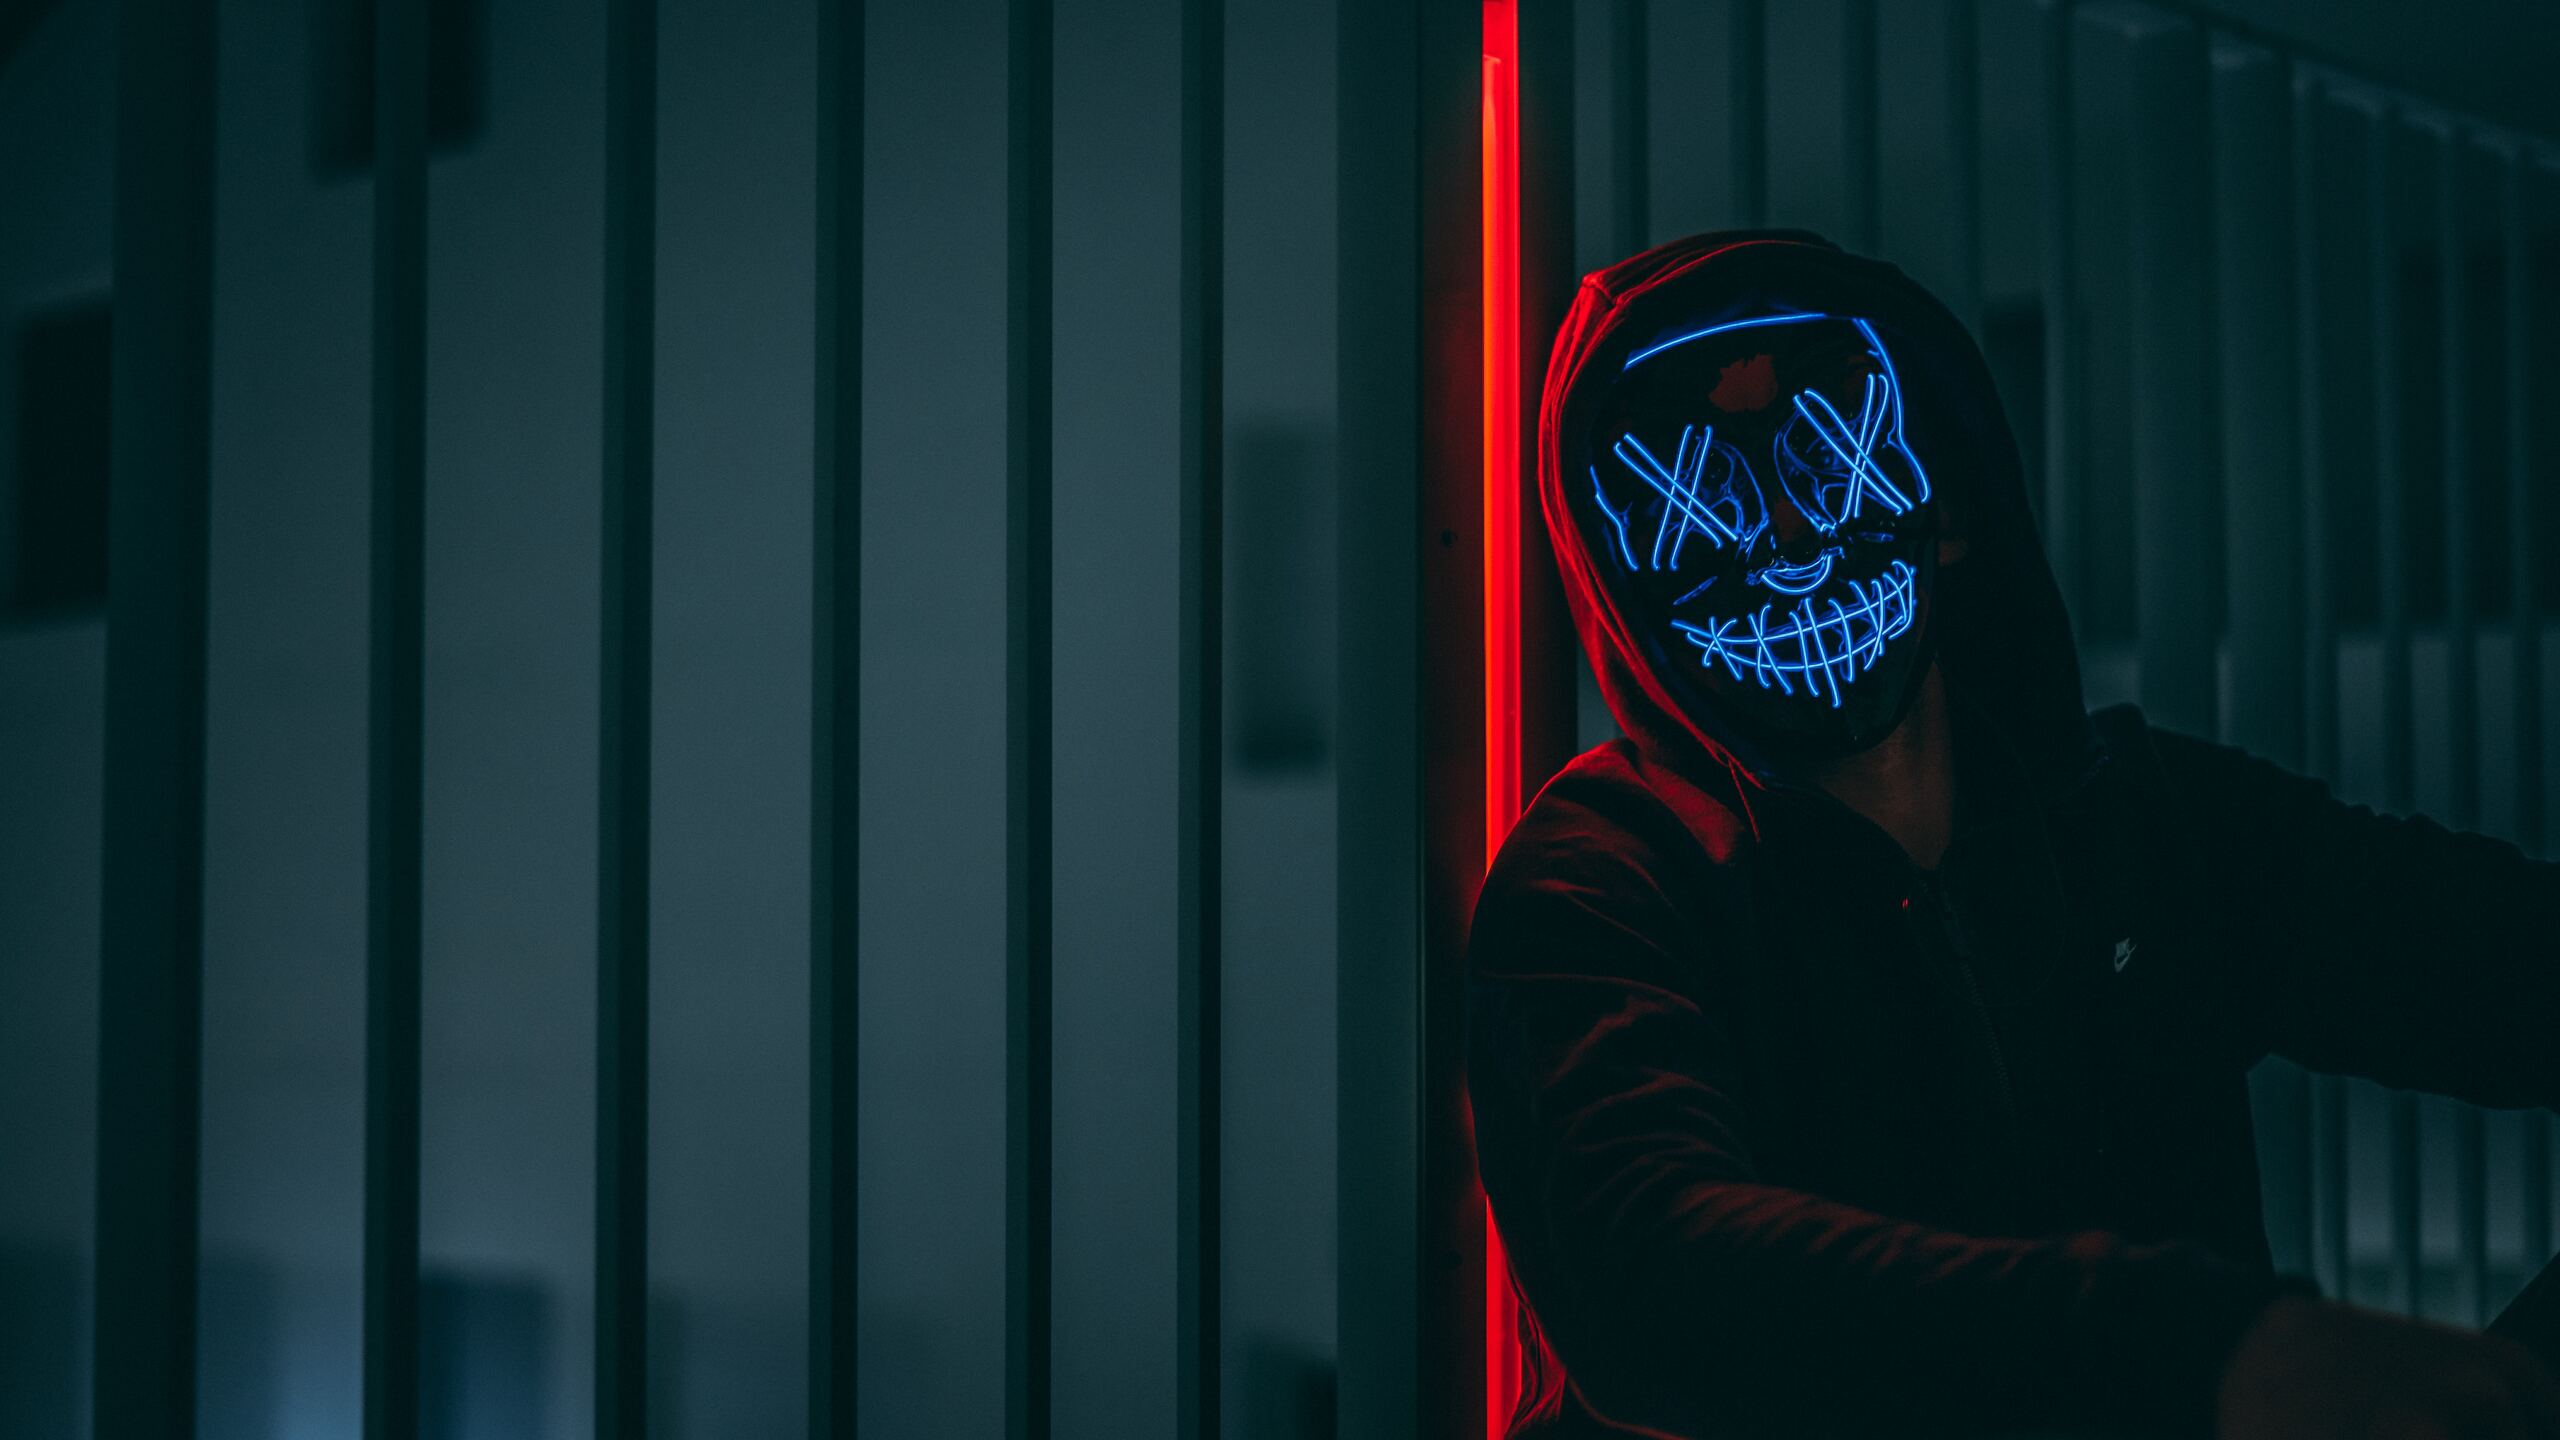 2560x1440 Mask Anonymous Hoodie Guy 5k 1440P Resolution HD ...